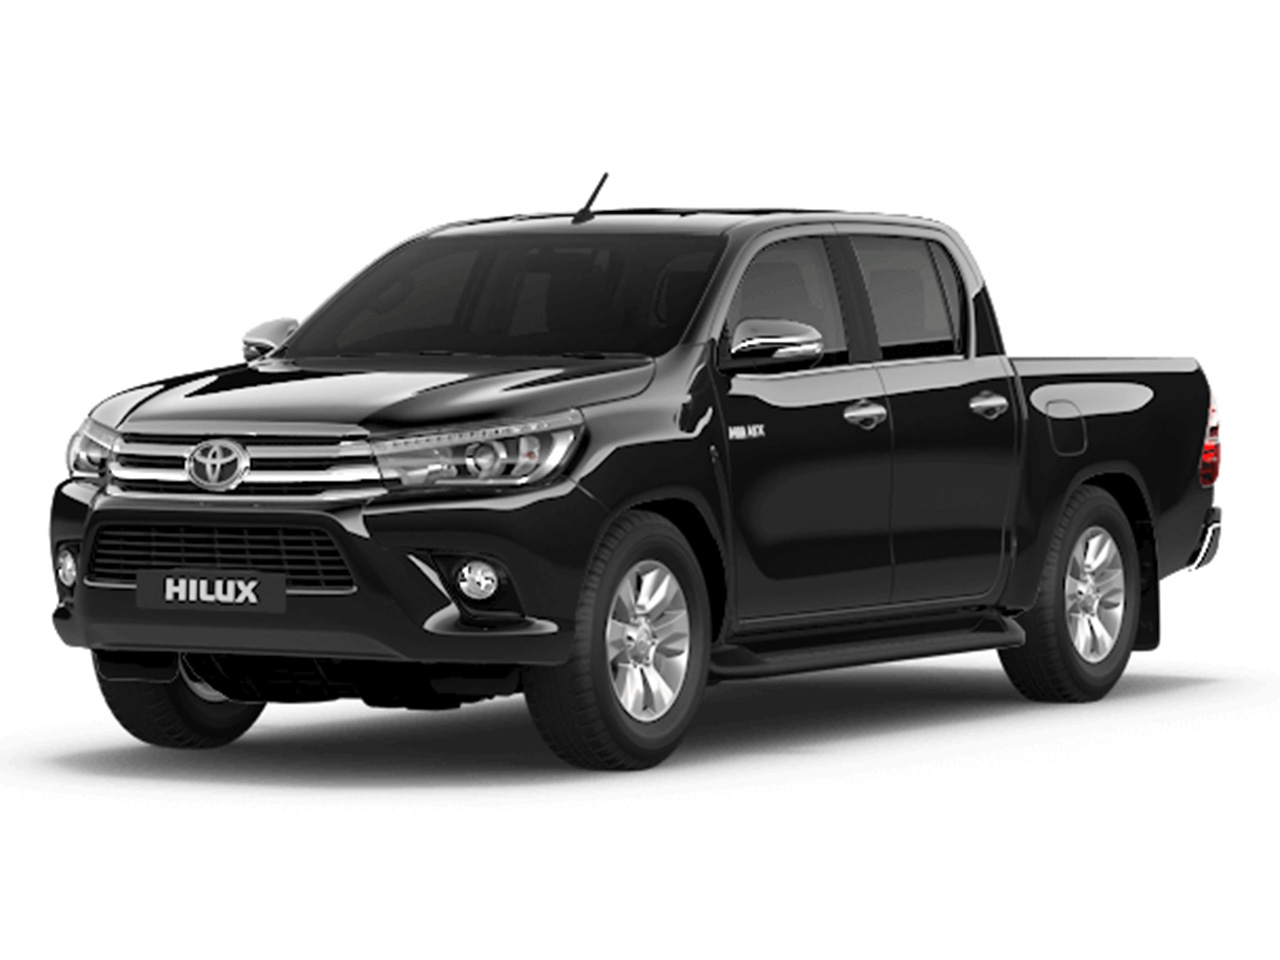 2018 Mercedes Pick Up Truck >> 2018 Toyota Hilux Prices in Qatar, Gulf Specs & Reviews for Doha | YallaMotor